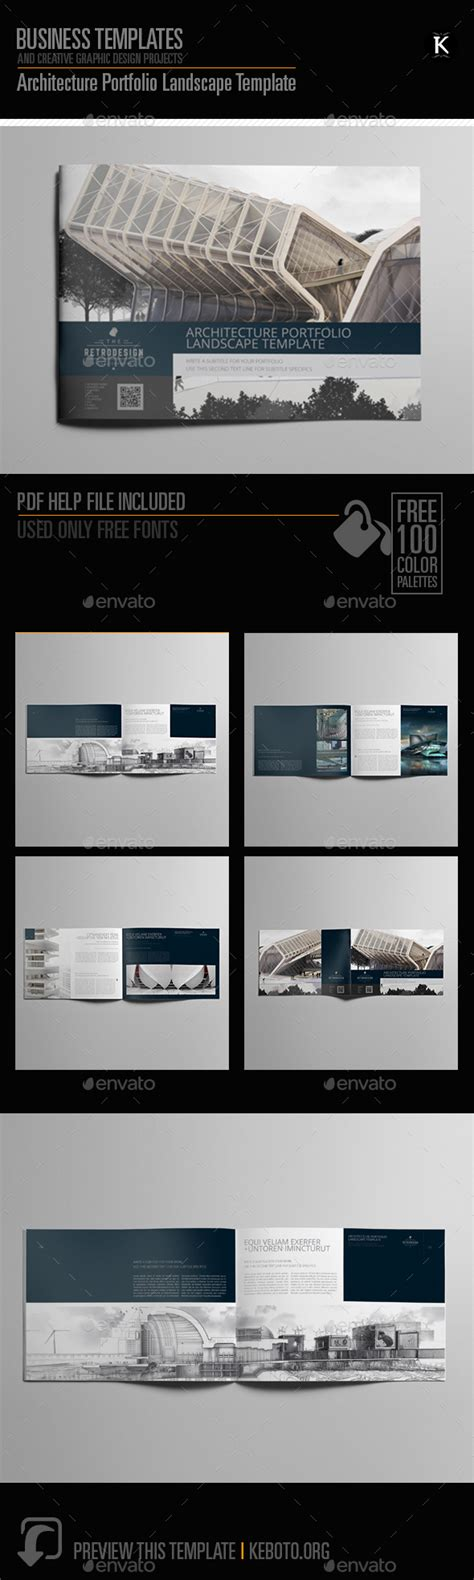 Architecture Portfolio Landscape Template By Keboto Graphicriver Architecture Portfolio Layout Templates